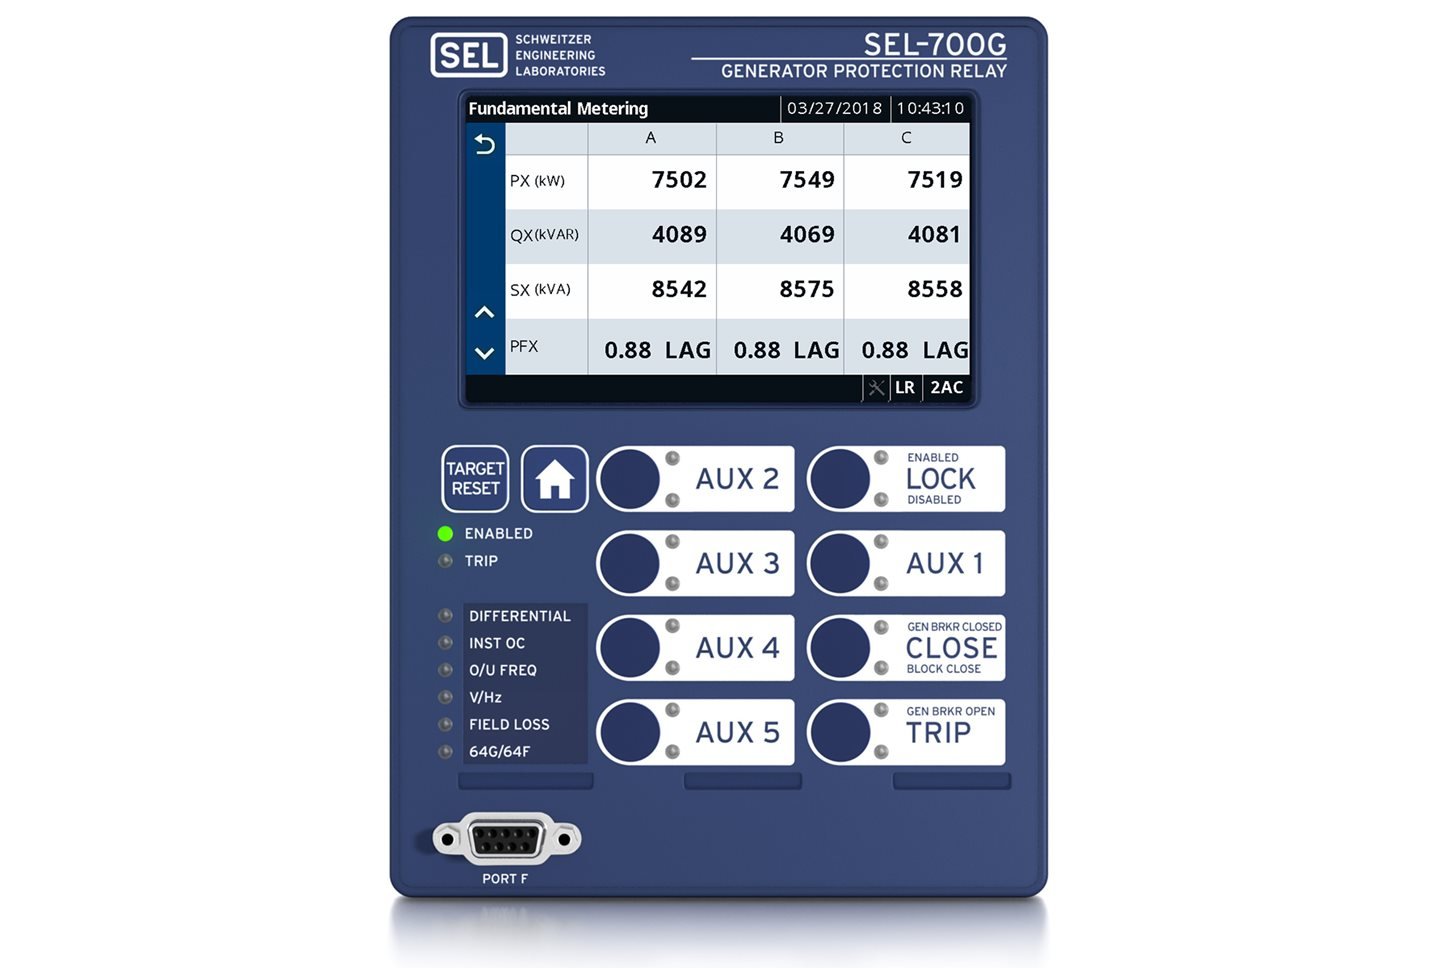 700G fundamental metering